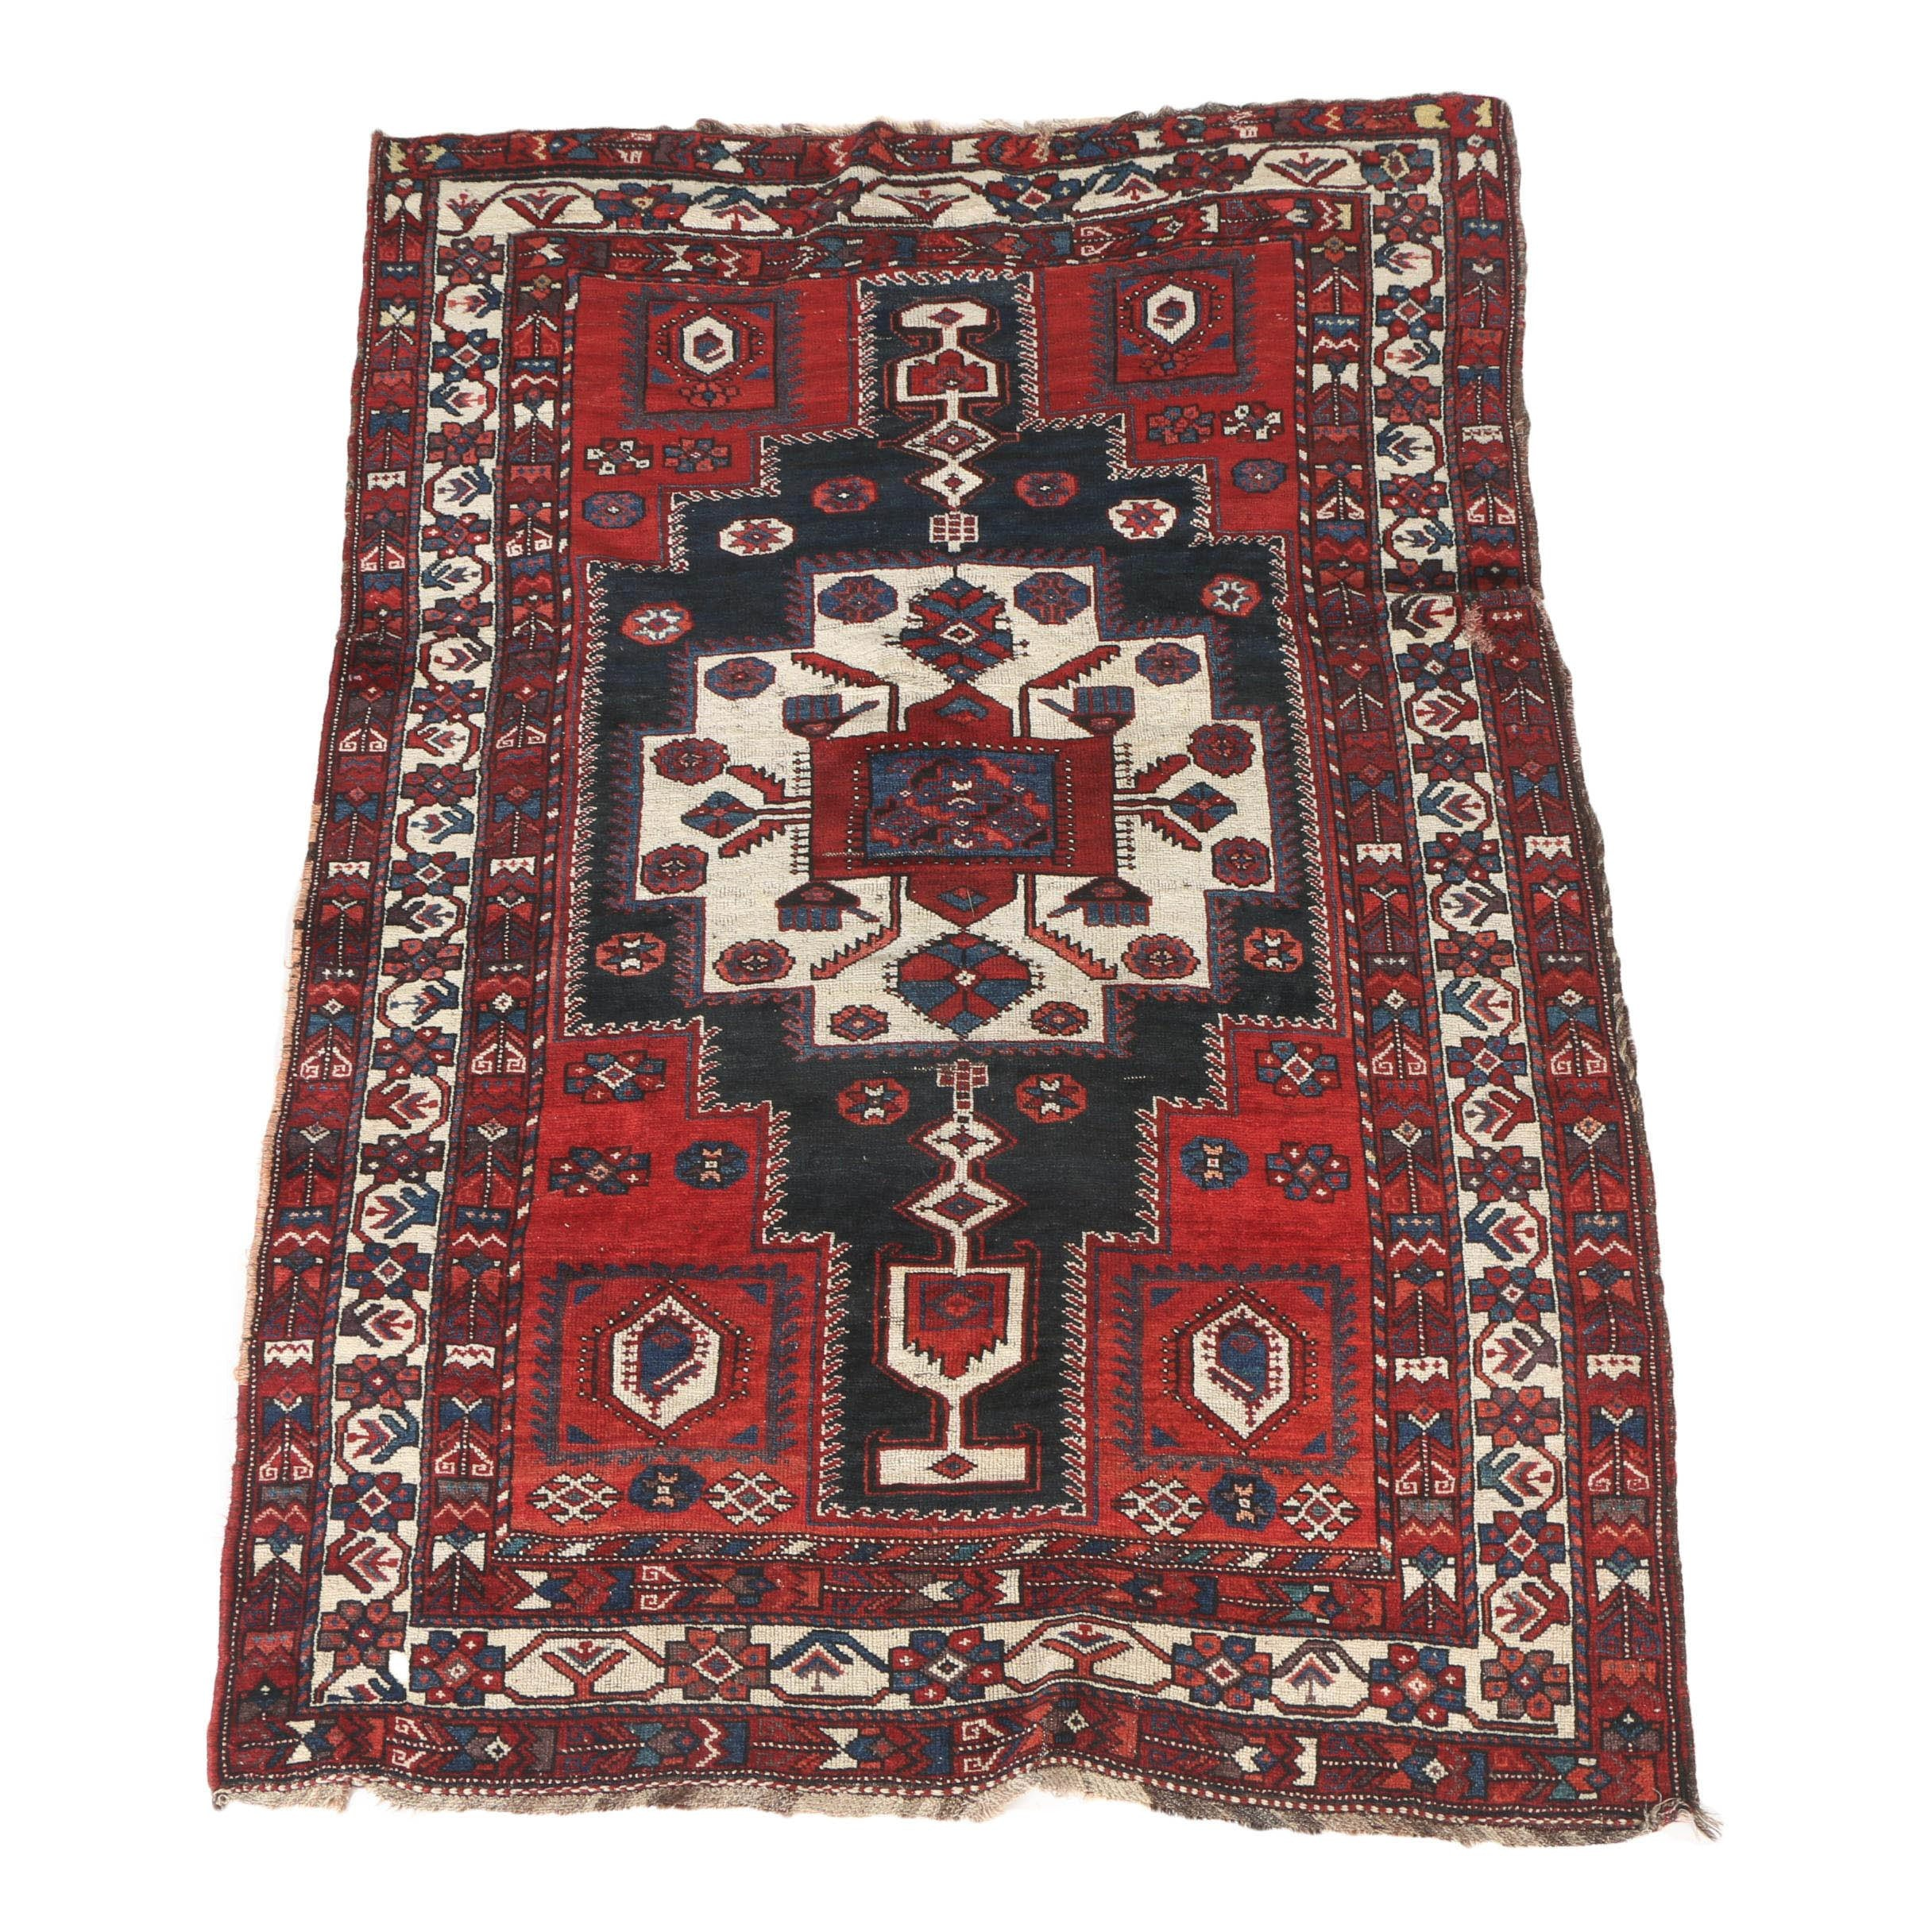 Semi-Antique Hand-Knotted Khamseh or Qashqai Tribal Area Rug